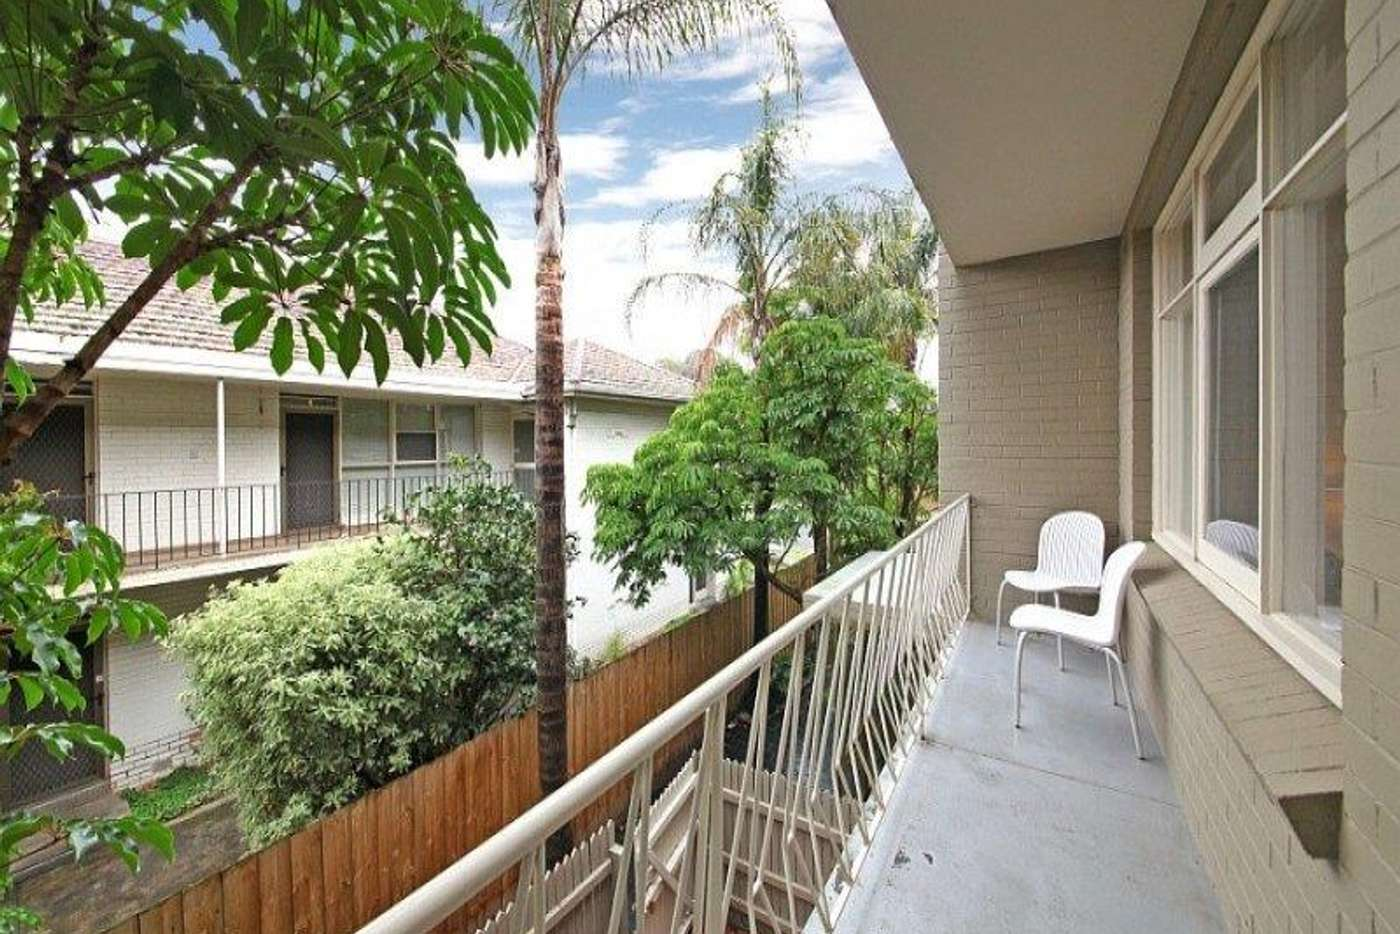 Main view of Homely apartment listing, 5/56 Sutherland Road, Armadale VIC 3143